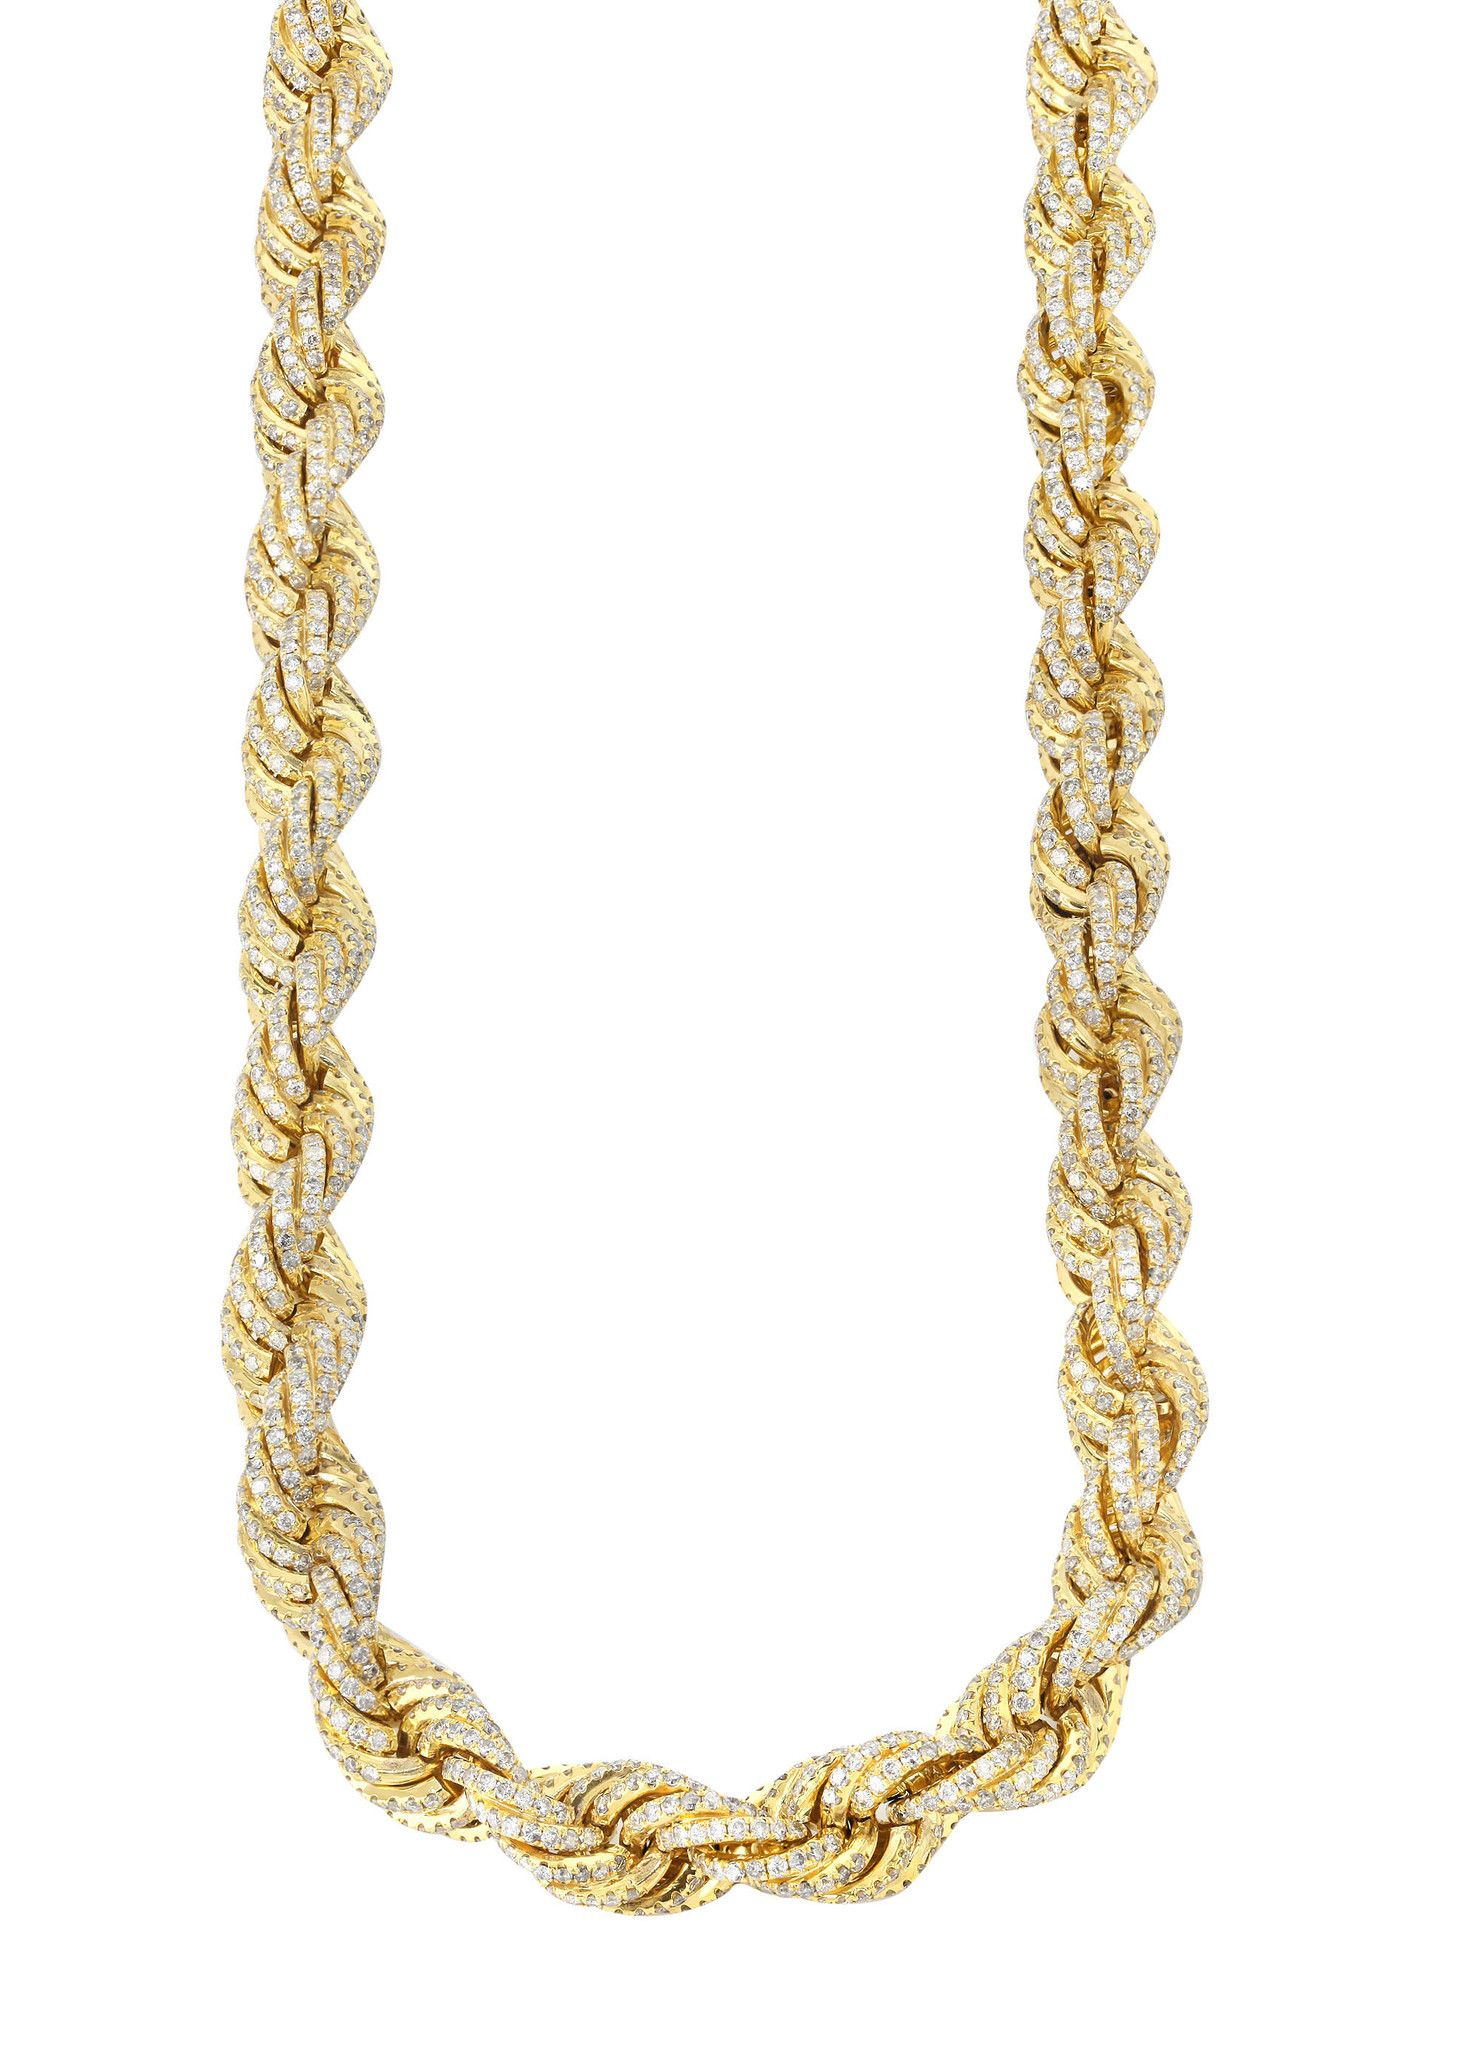 Iced Out Rope Chain 72 92 Carats 12 Mm Width 29 Inch Length Metal Stamped Jewelry Rope Chain Gold Necklace Women